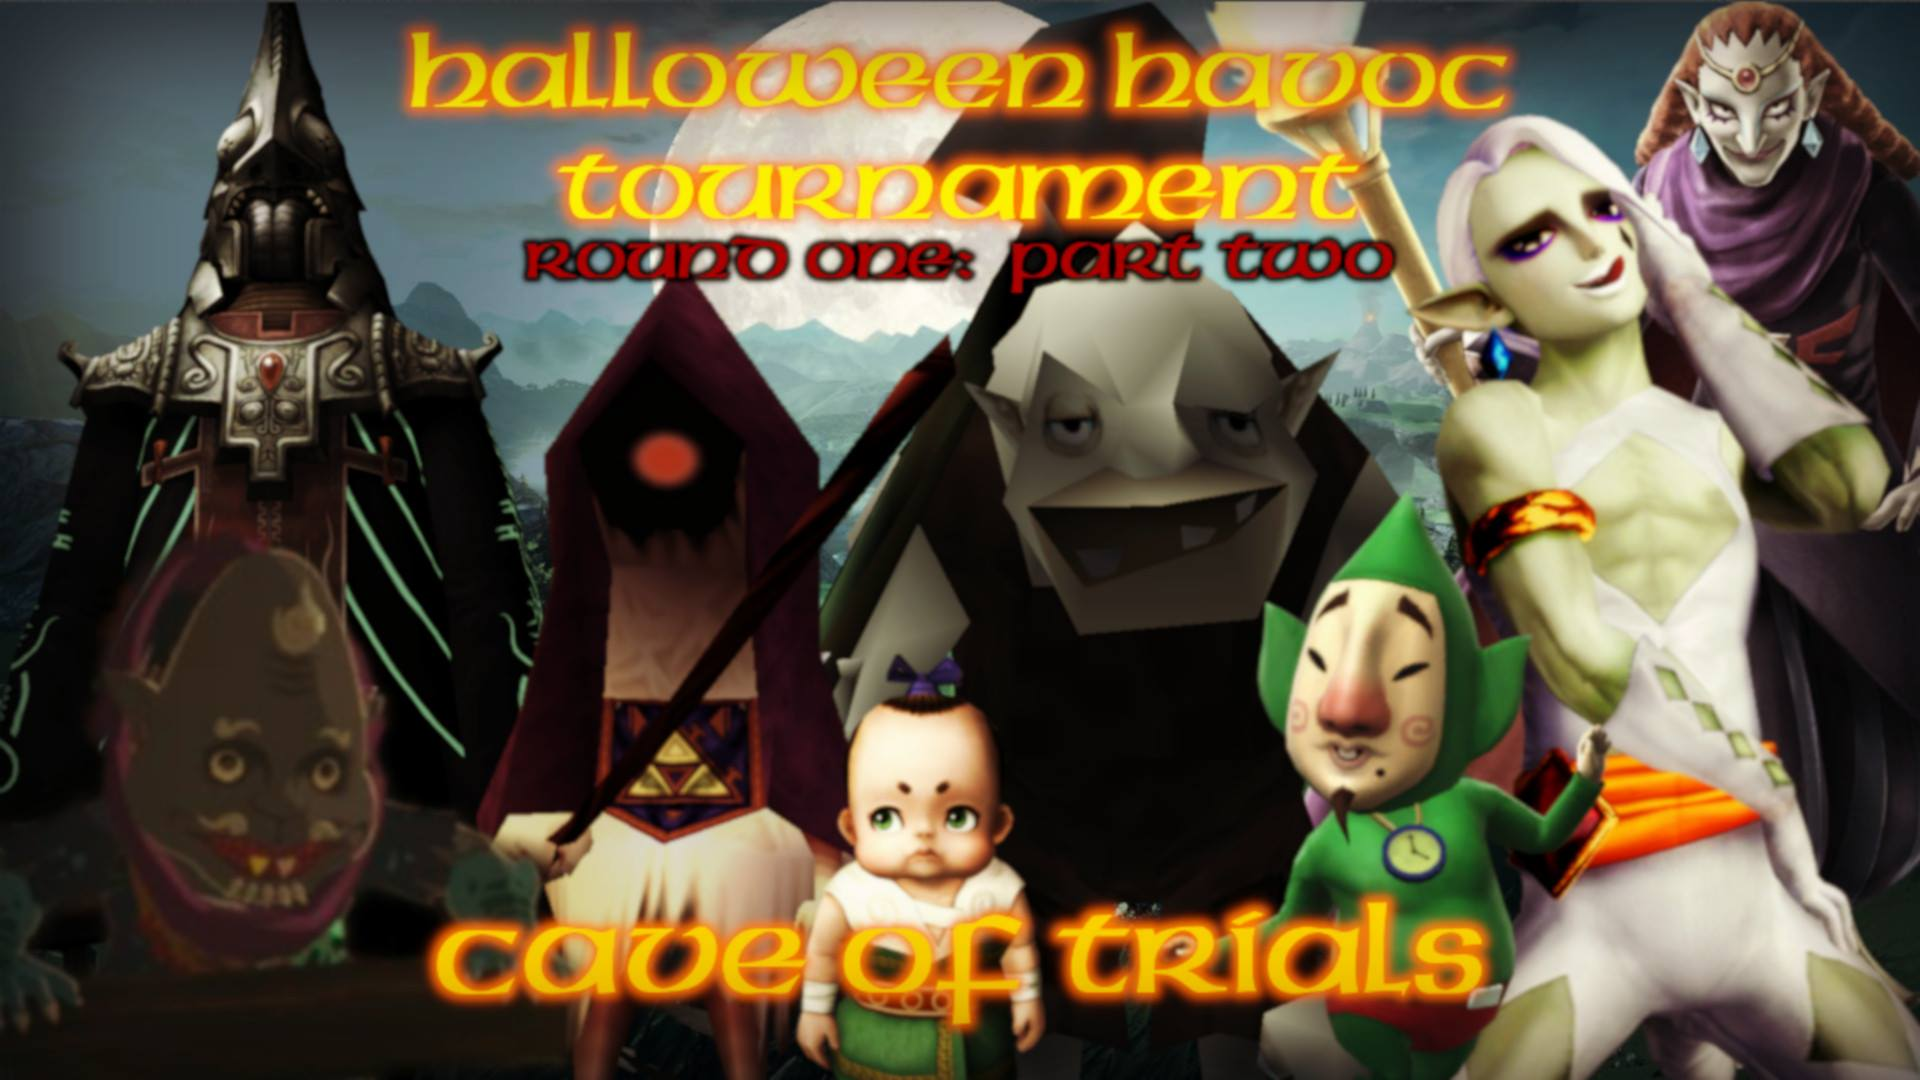 Cave of Trials: The Second Half for Round One of the Halloween Havoc Tournament Lurks Forth!